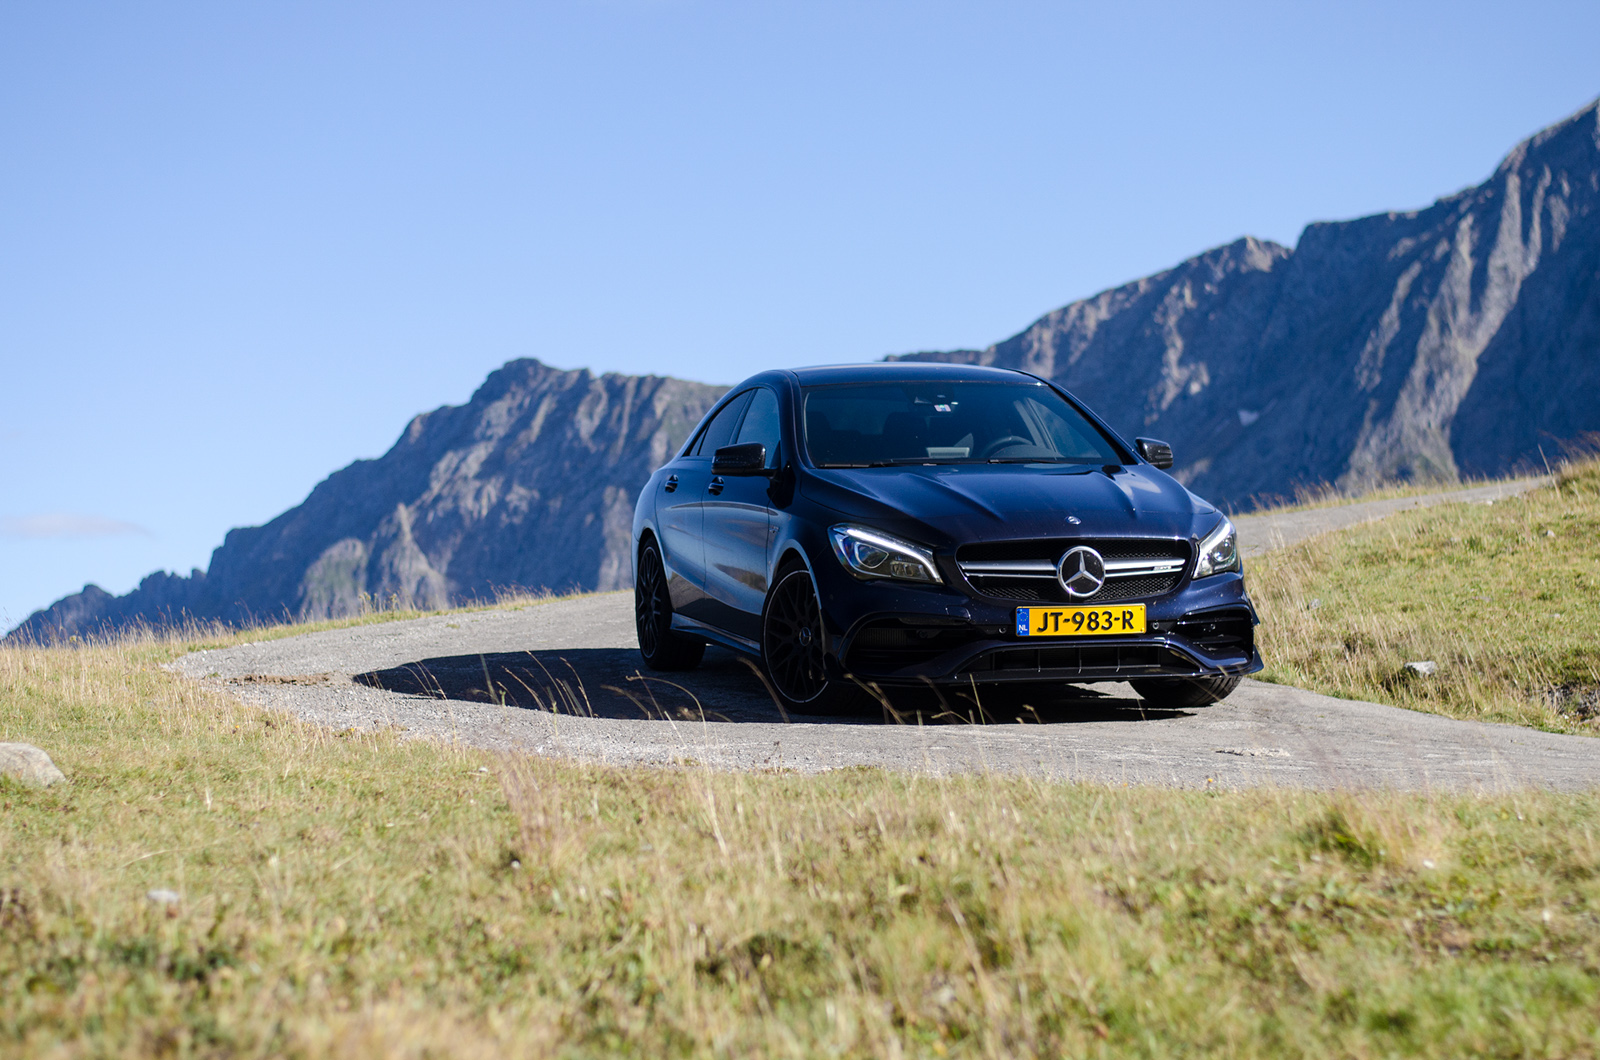 2017 Mercedes-AMG CLA 45 Road Trip Review